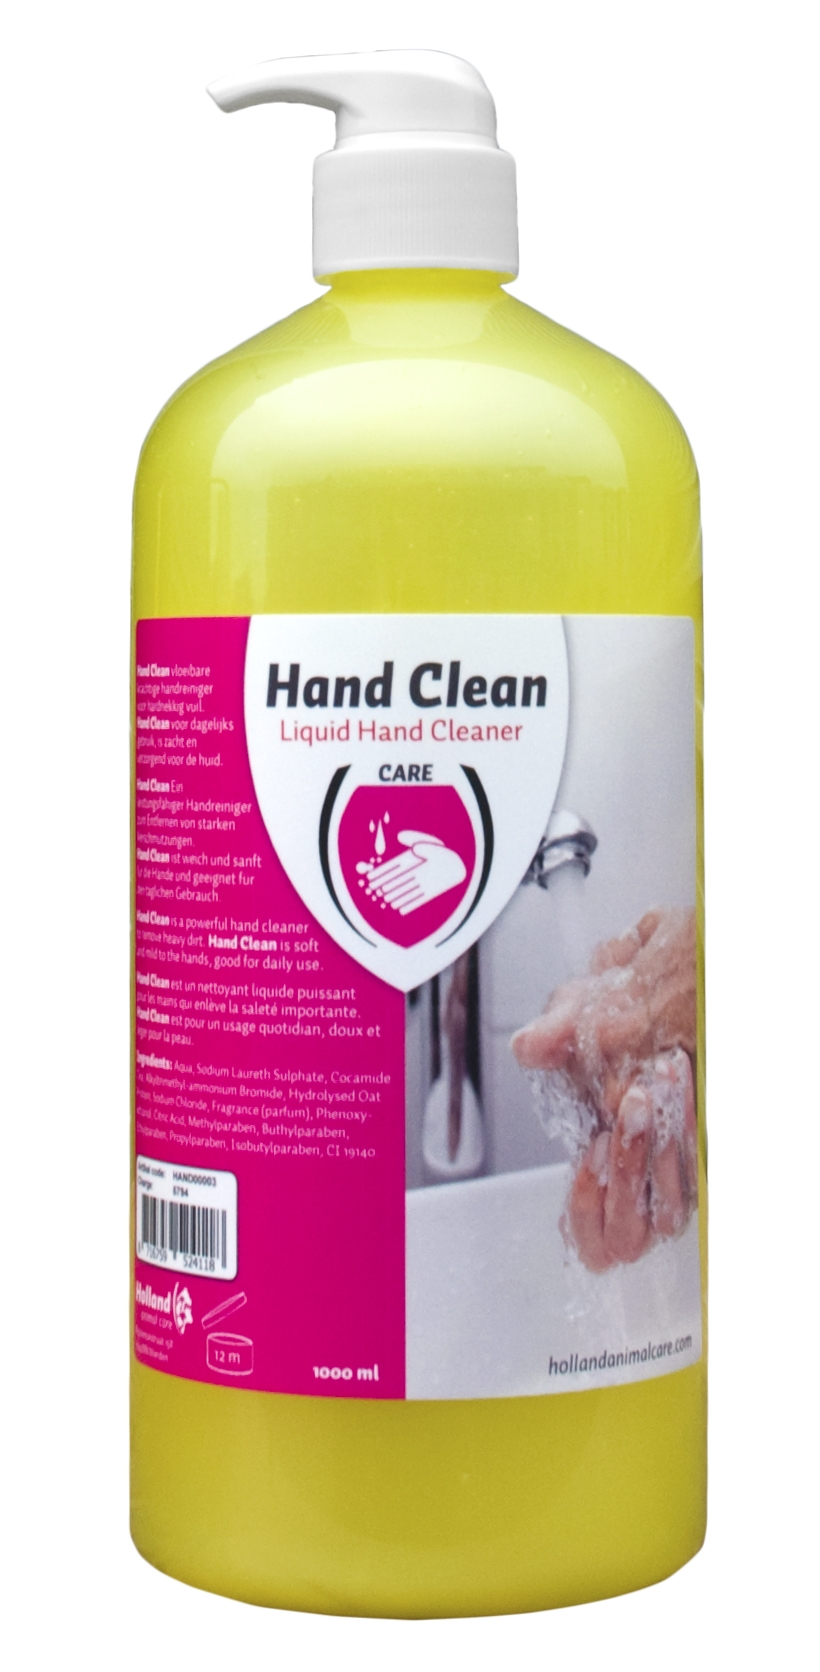 Hand Clean with pump